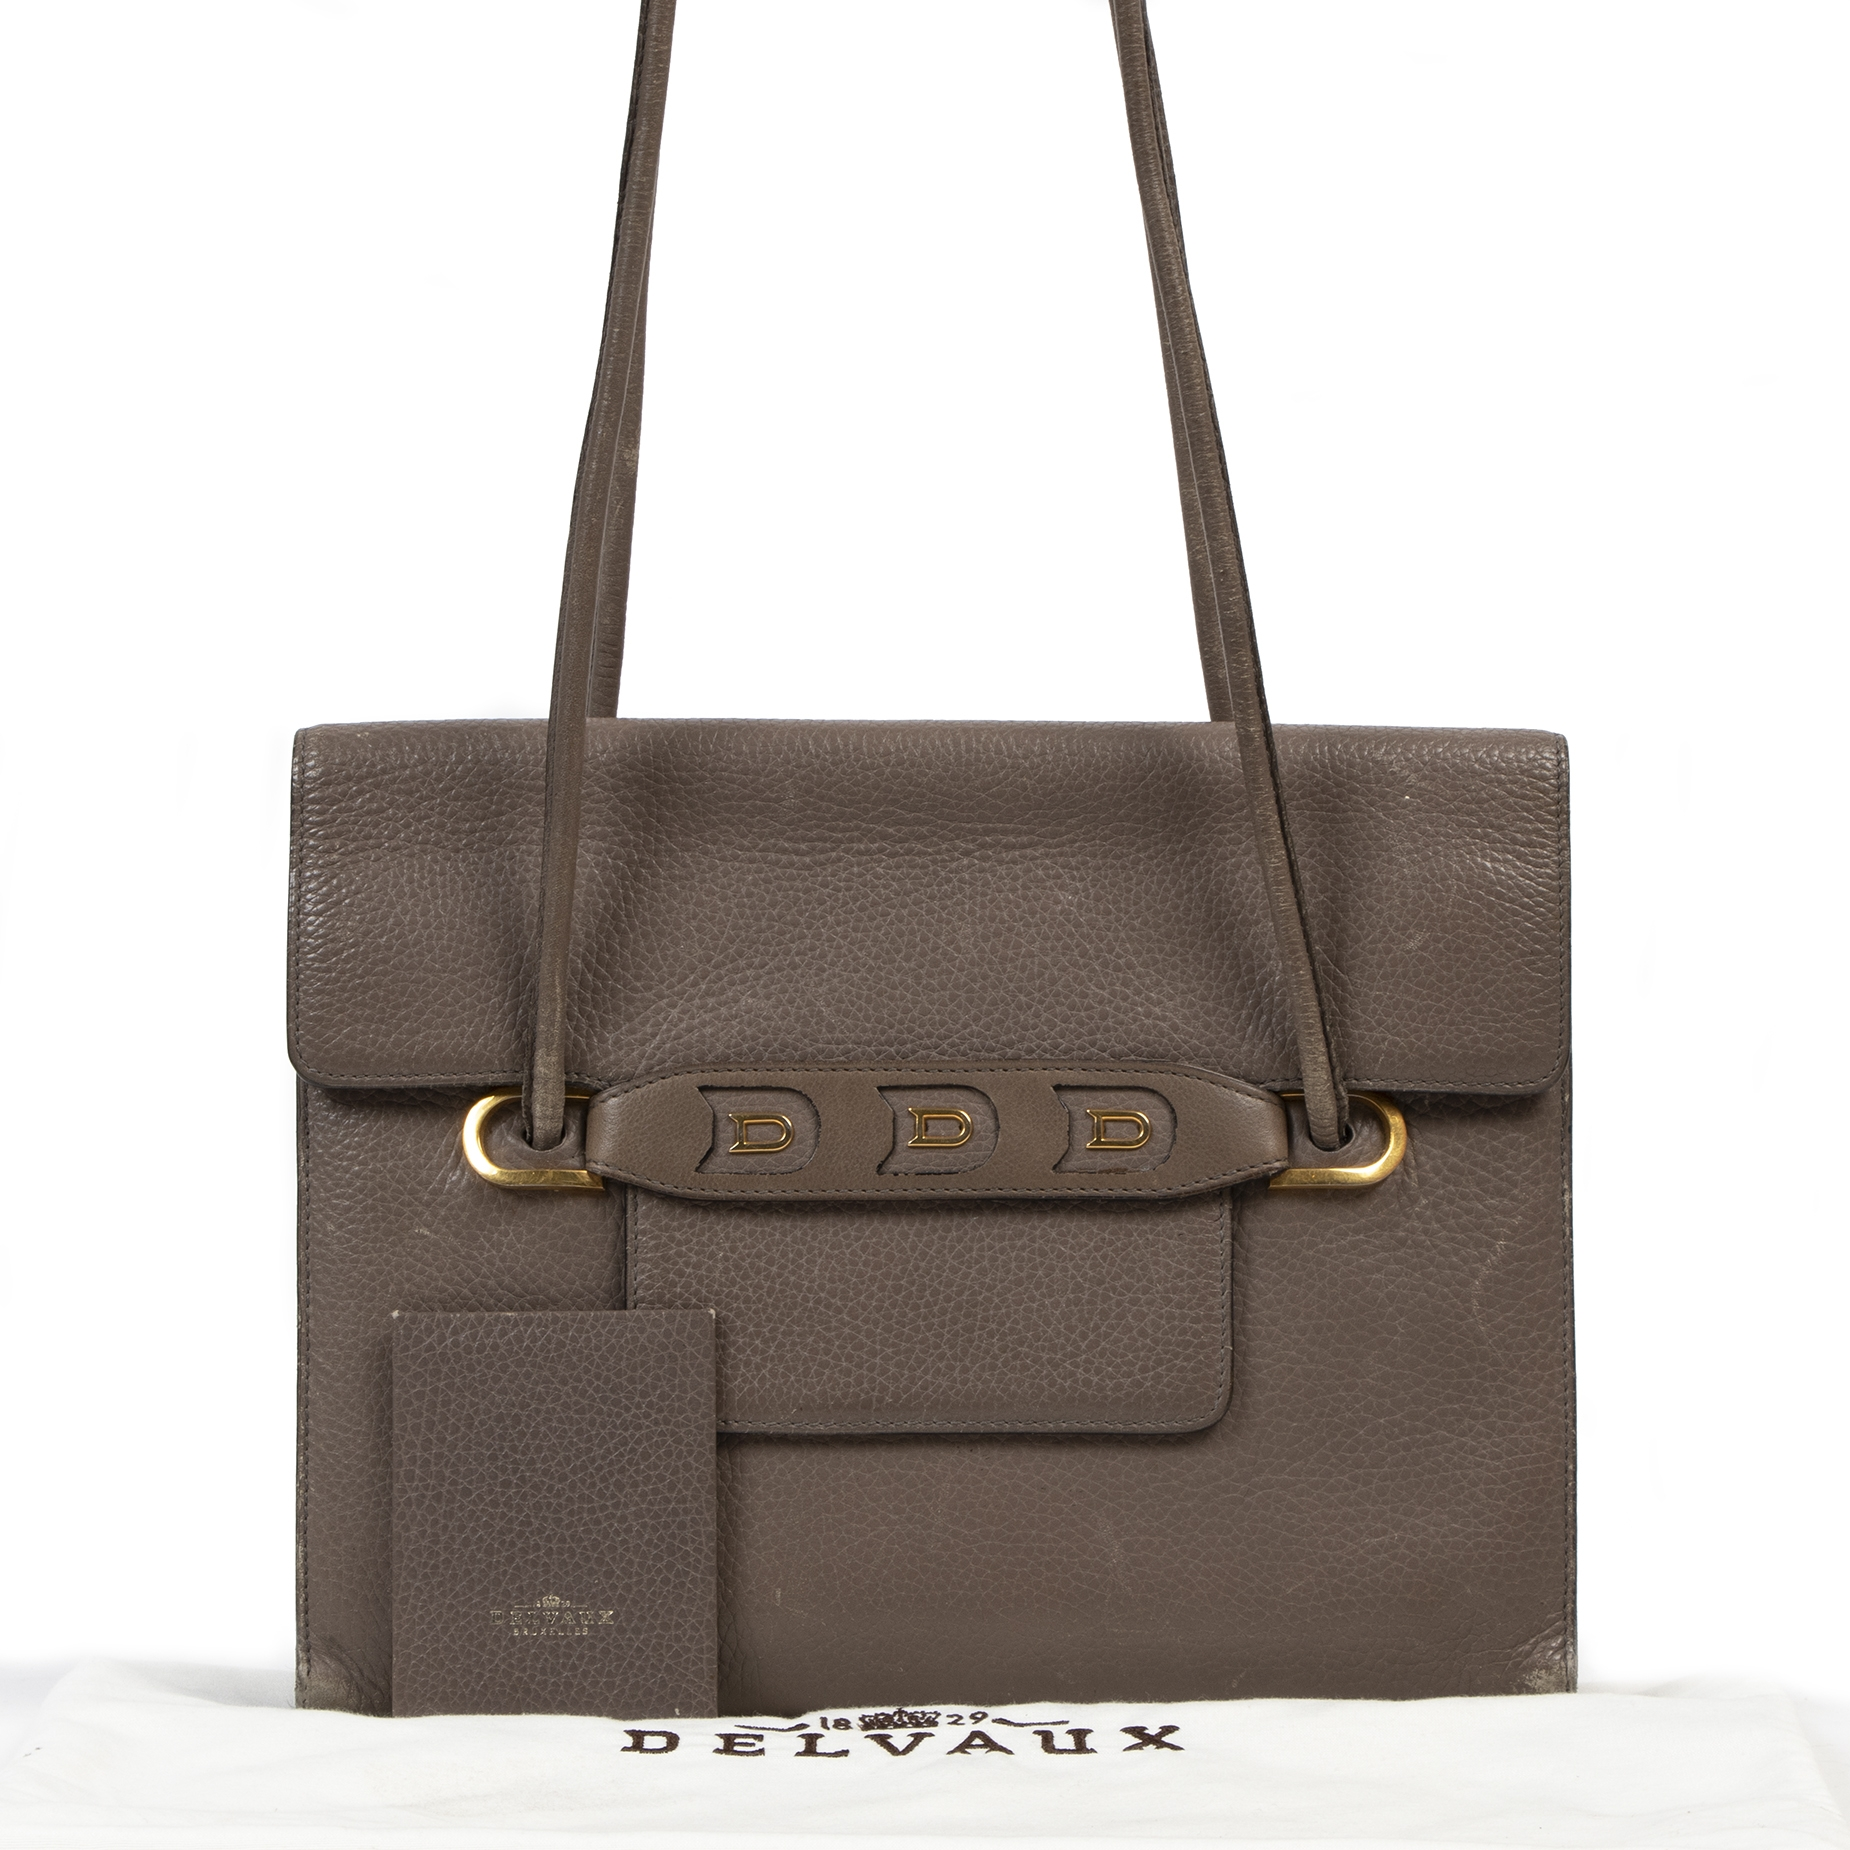 Authentieke tweedehands vintage Delvaux Taupe Leather Shoulder Bag koop online webshop LabelLOV